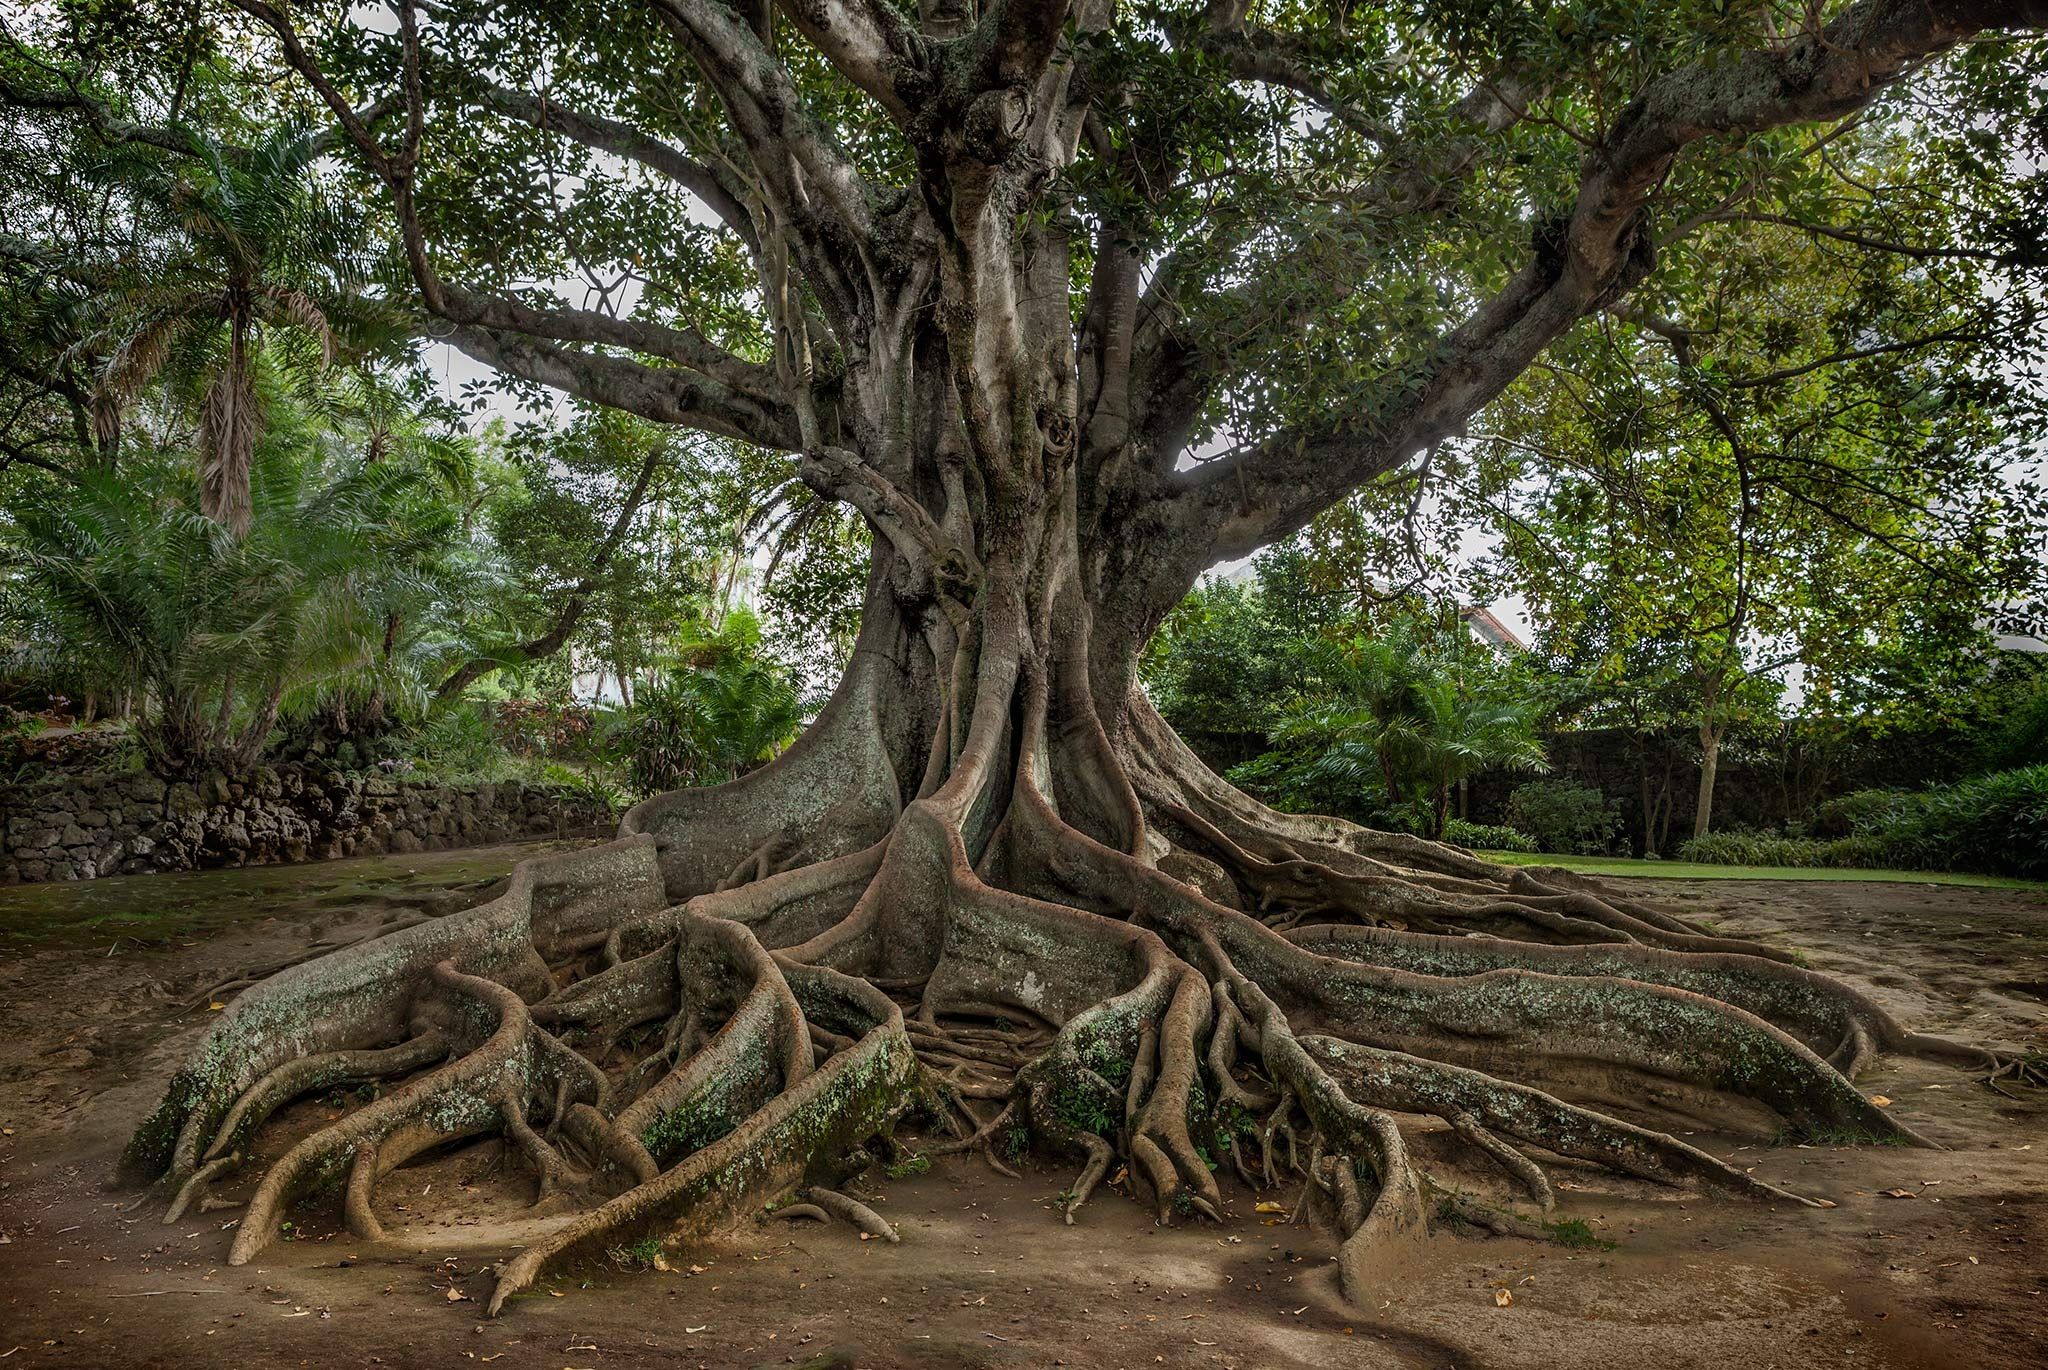 Giant roots by Canonmats